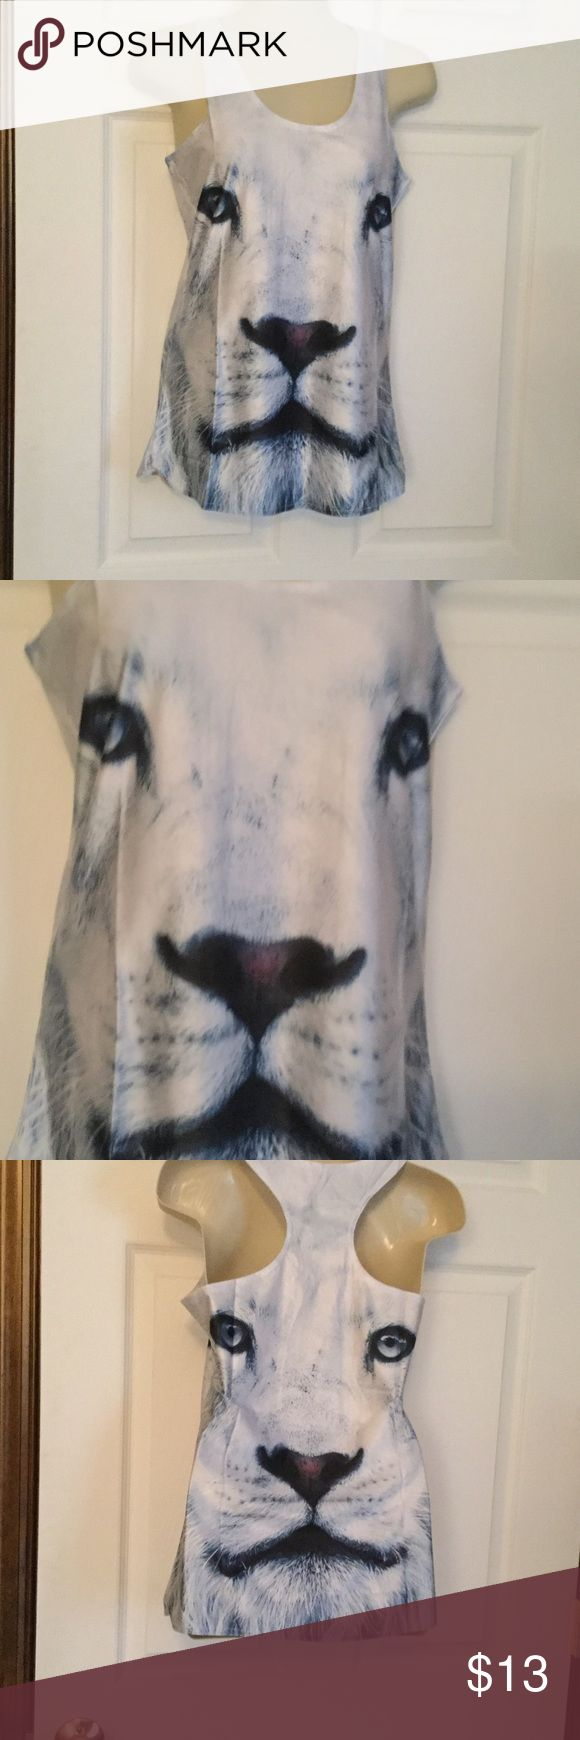 Lion Face Tank Top NWOT One size, but fits more like a s/m.  Soft stretchy material.  NWOT. Tops Tank Tops